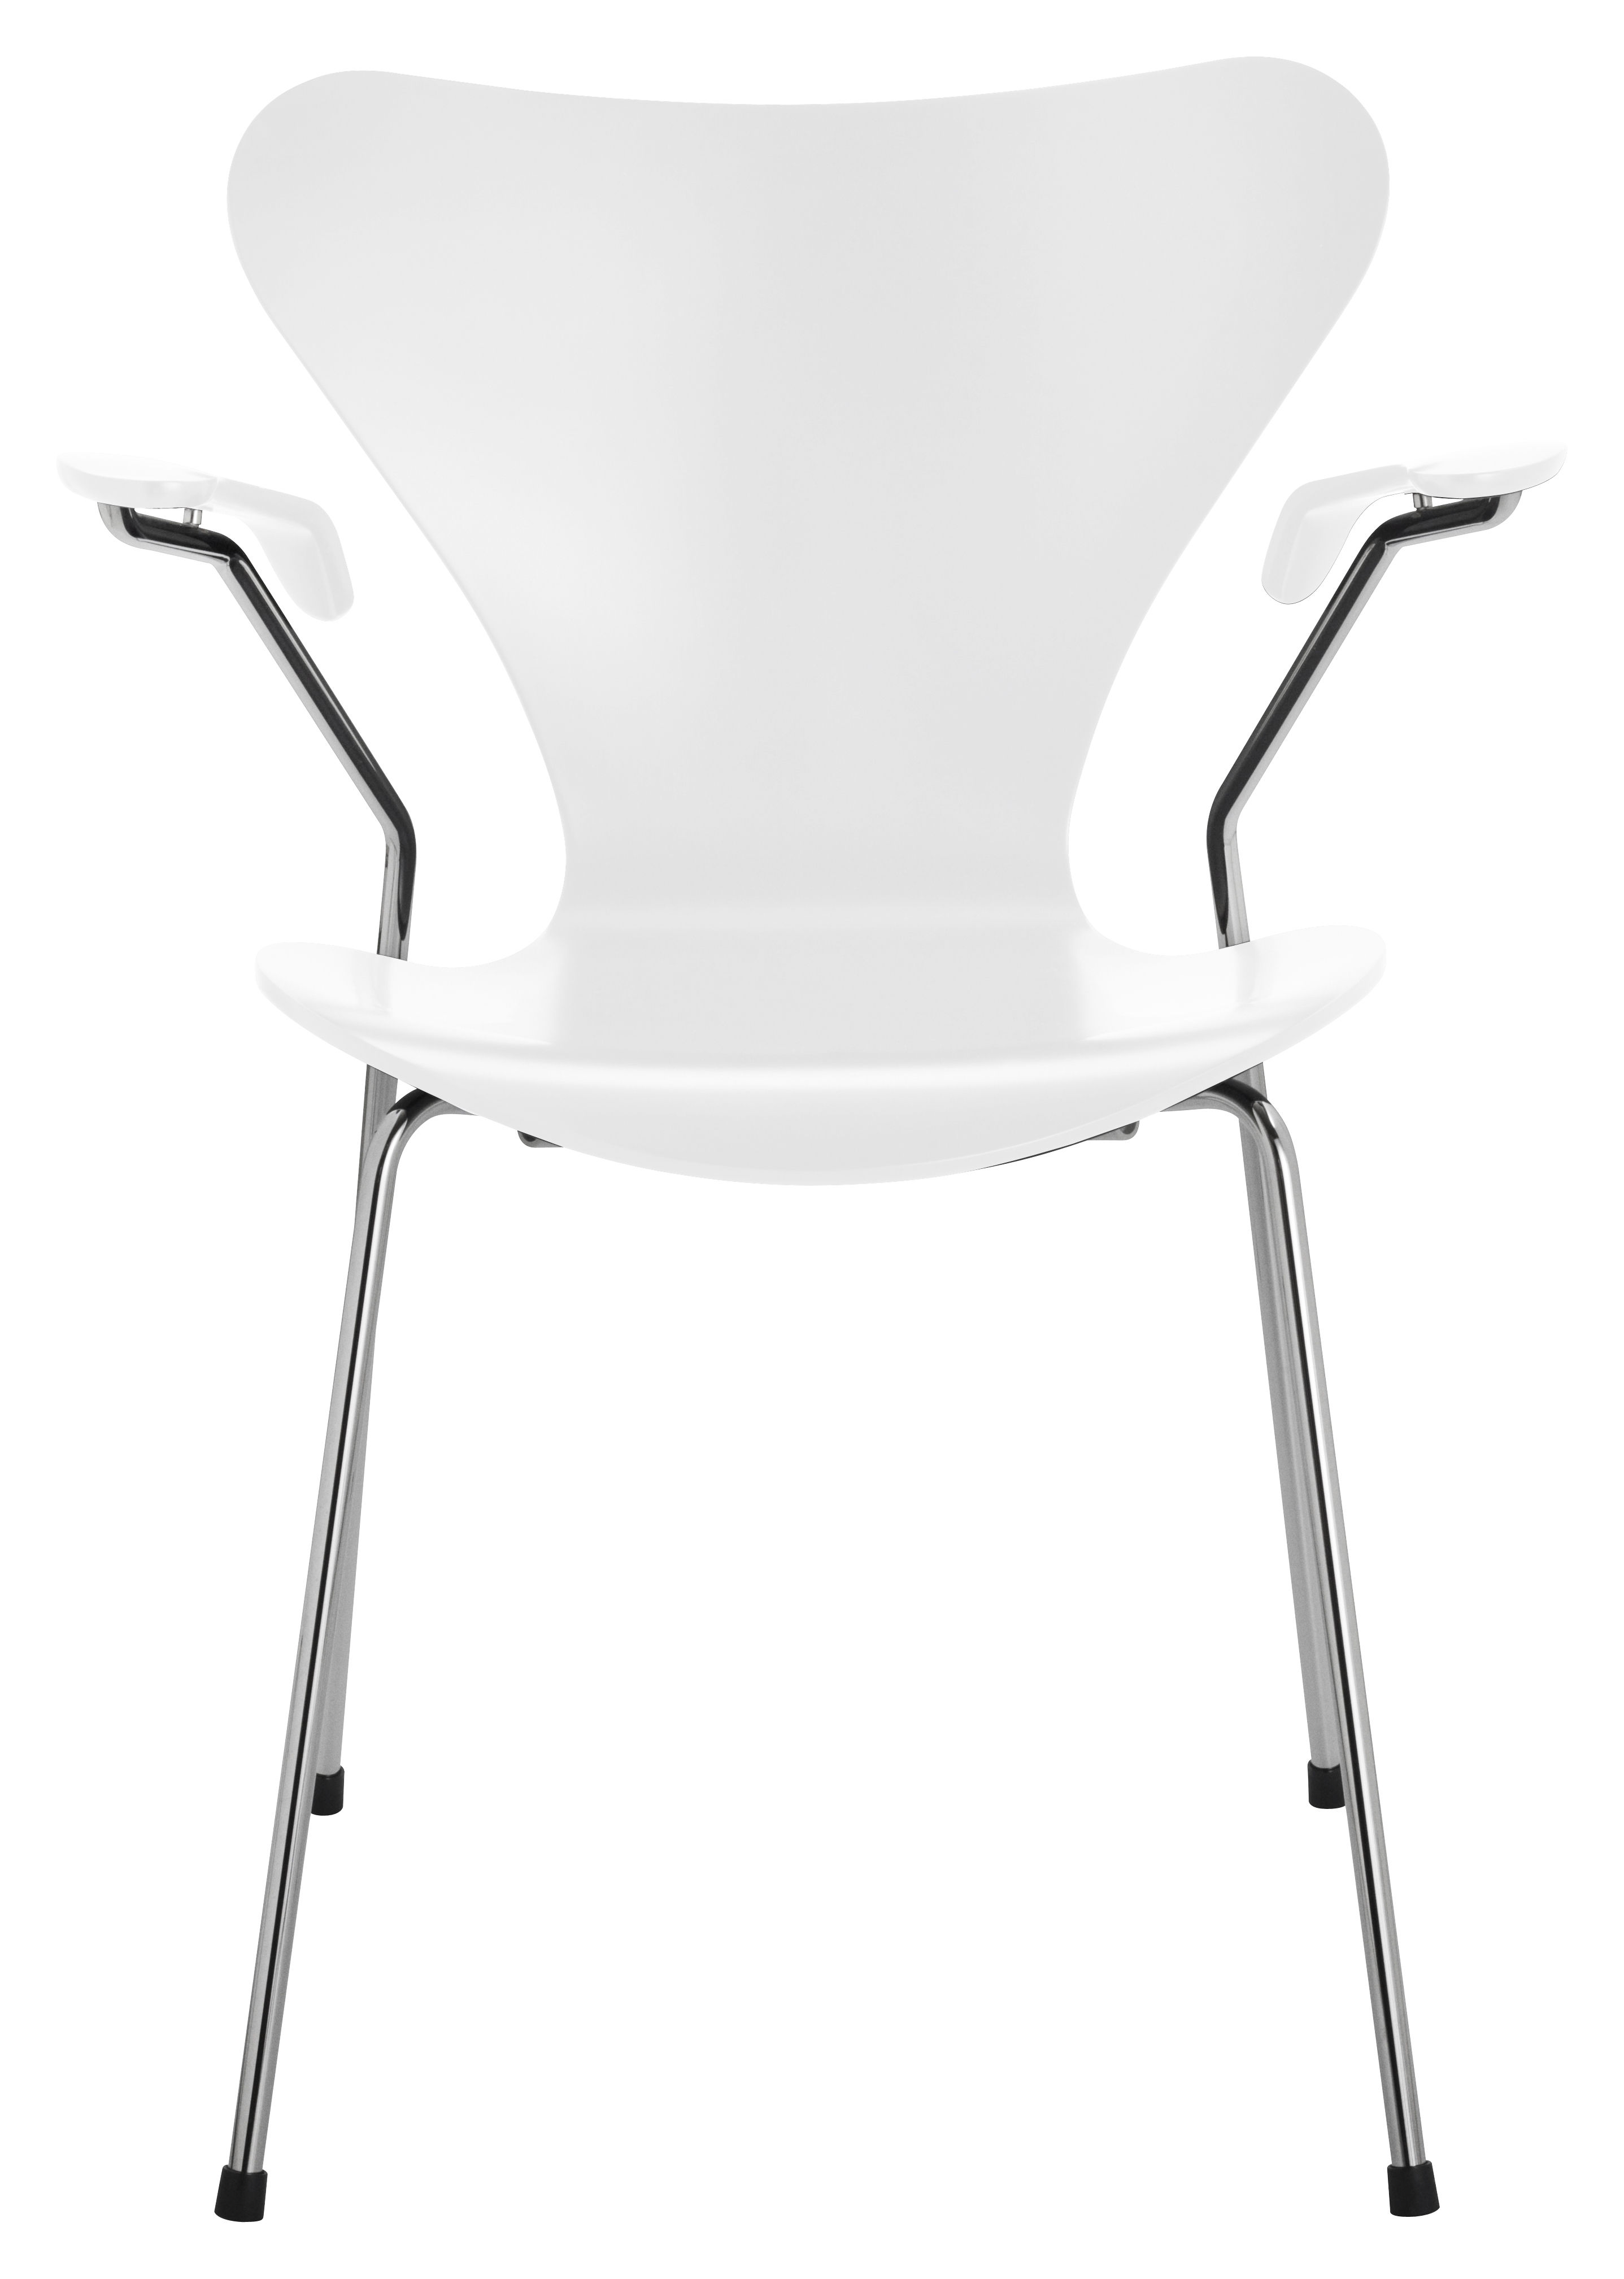 Furniture - Chairs - Série 7 Armchair - Ash by Fritz Hansen - Black tainted ash - Beechwood, Steel